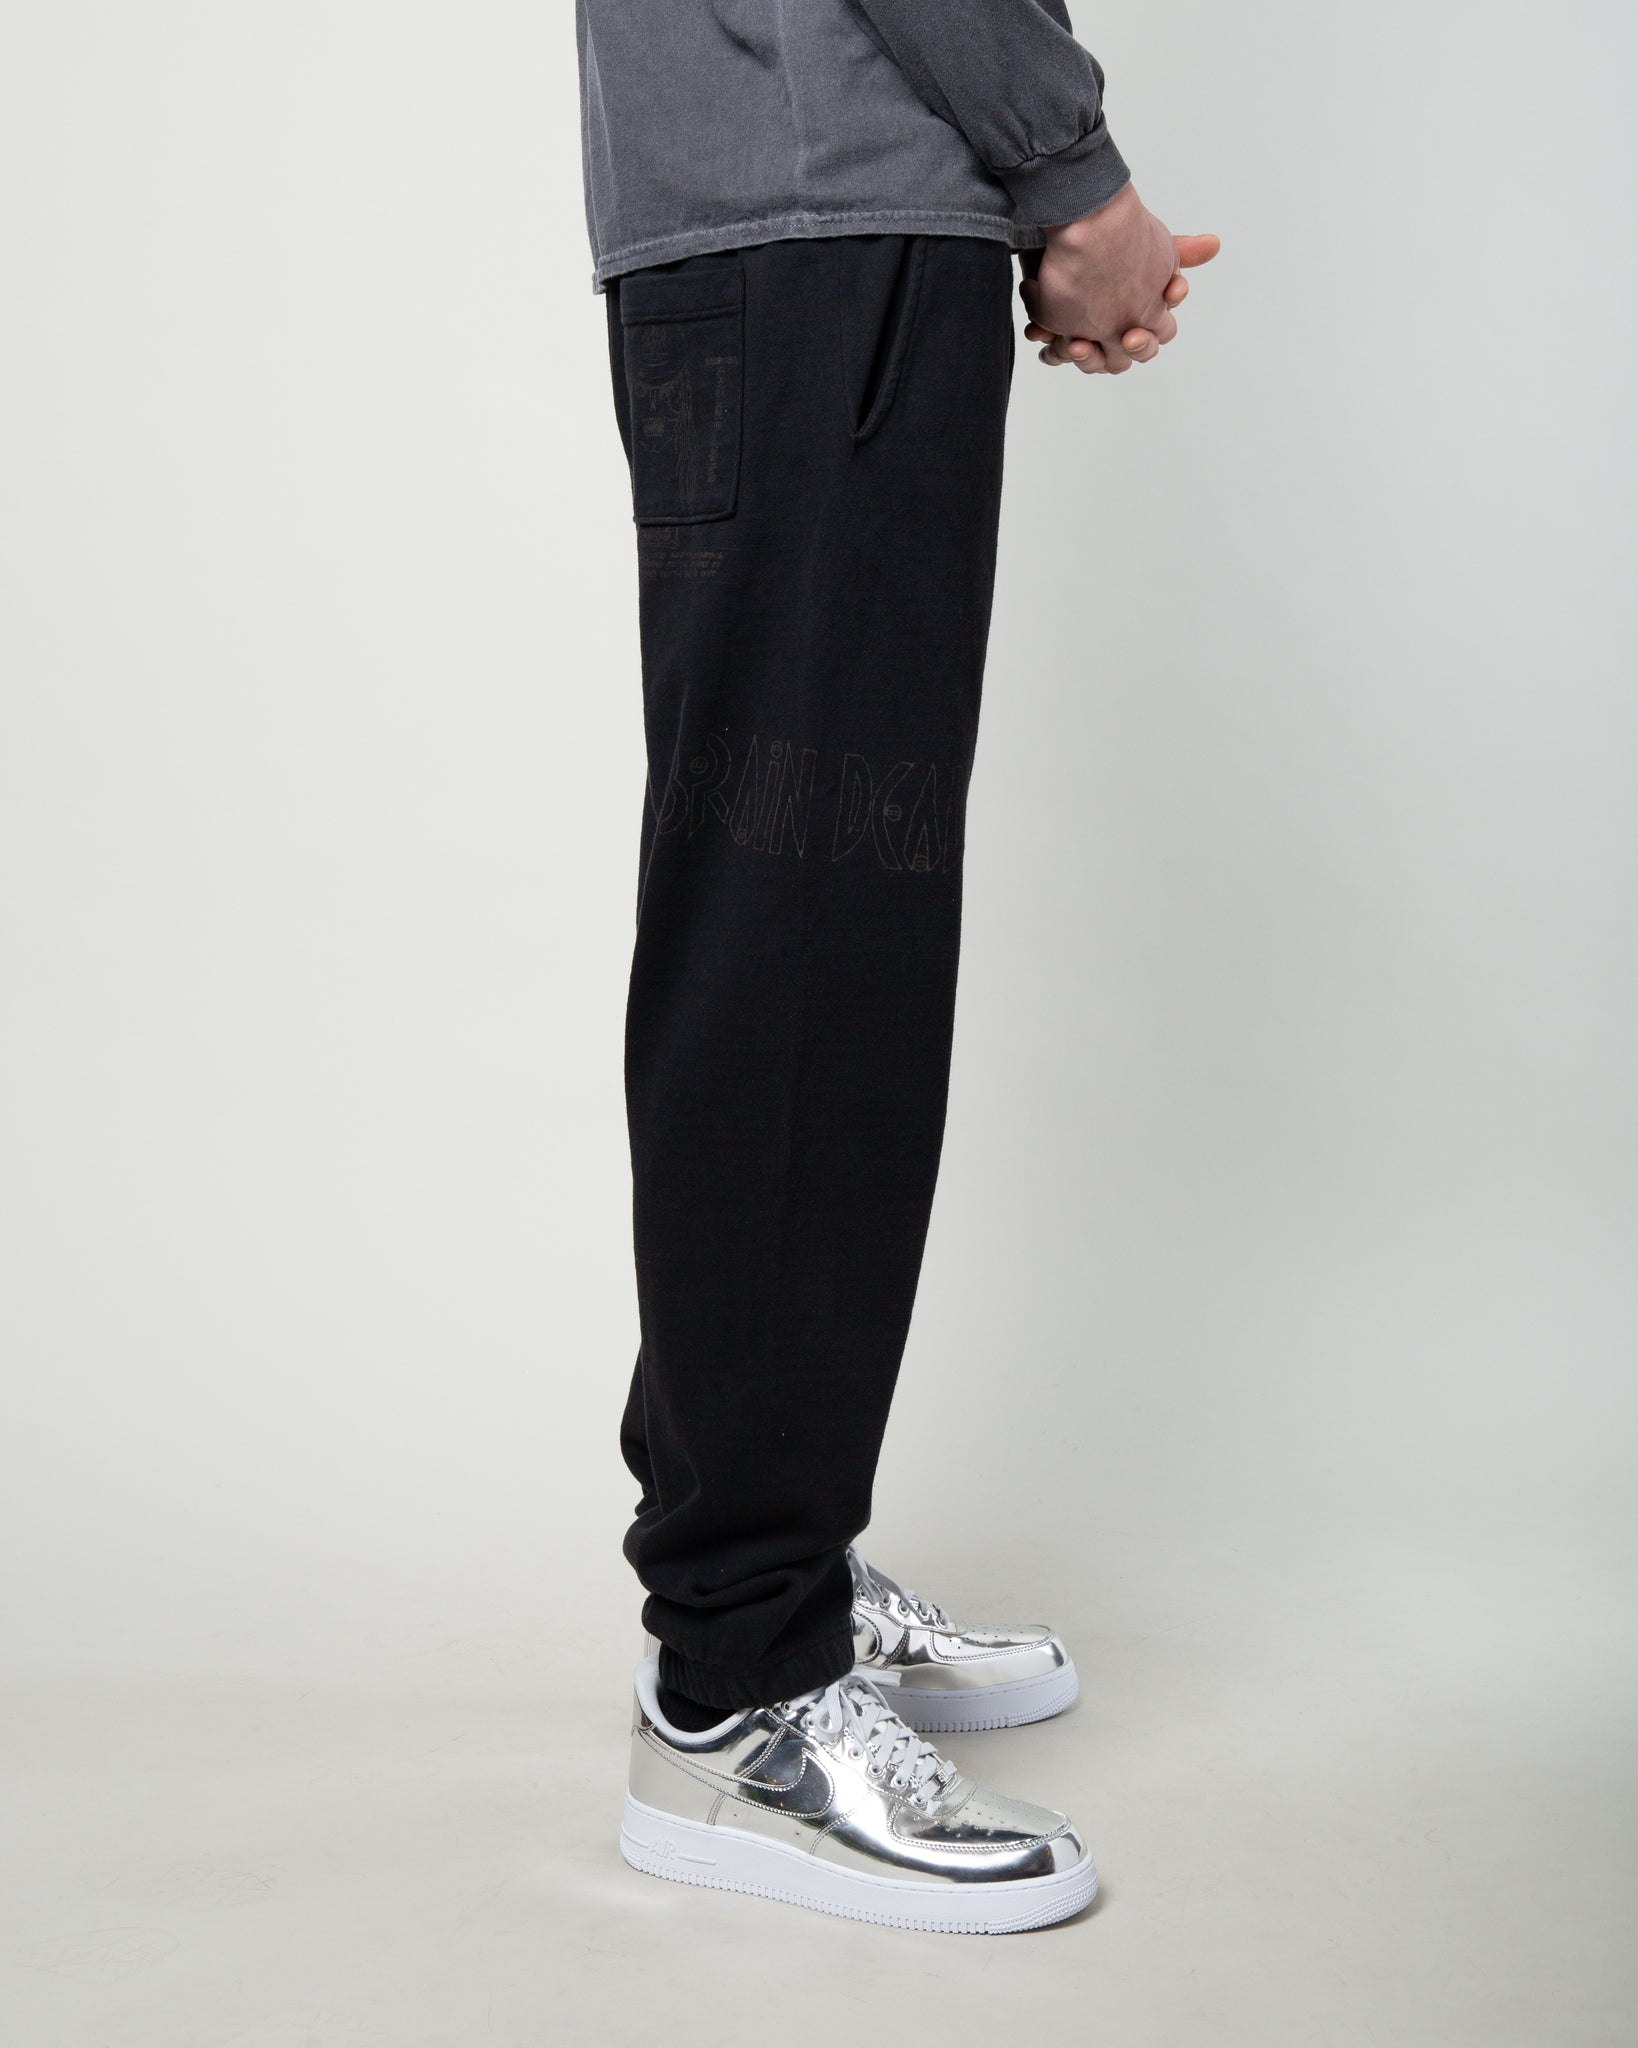 Matt Locke Sweatpant Black